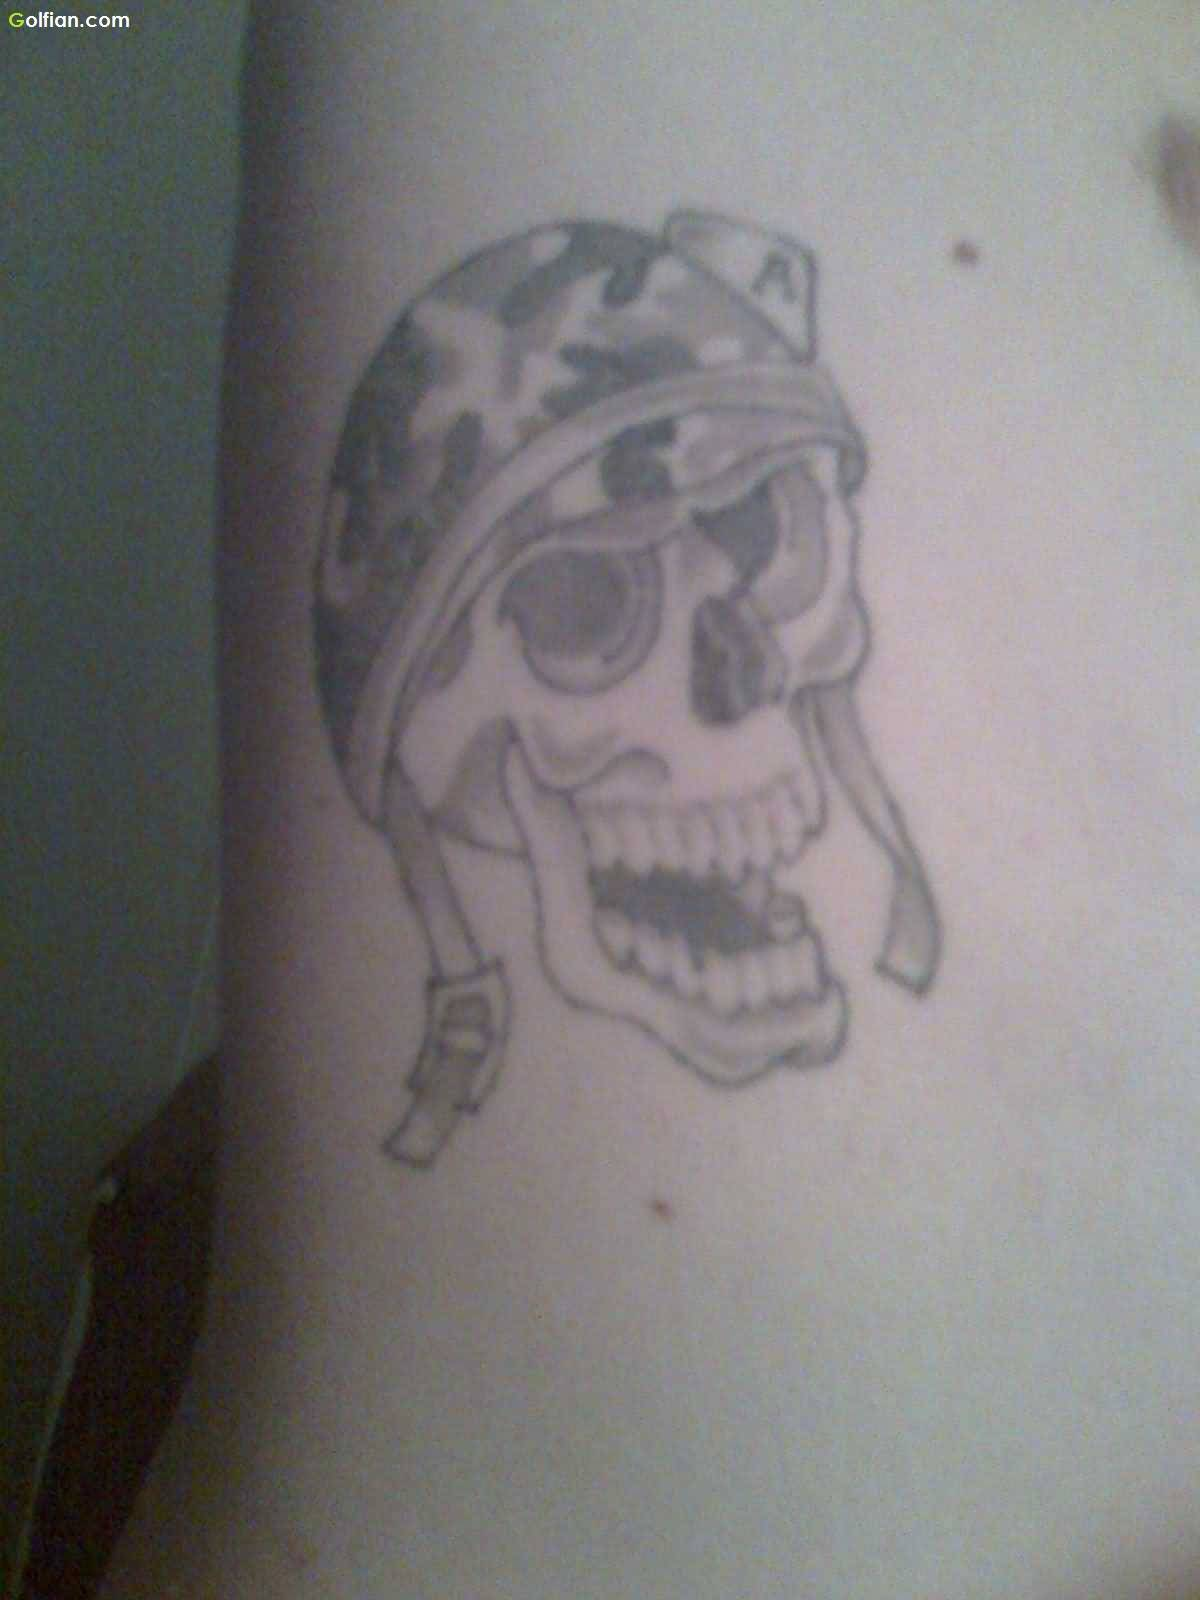 best military skull tattoos pictures. Black Bedroom Furniture Sets. Home Design Ideas